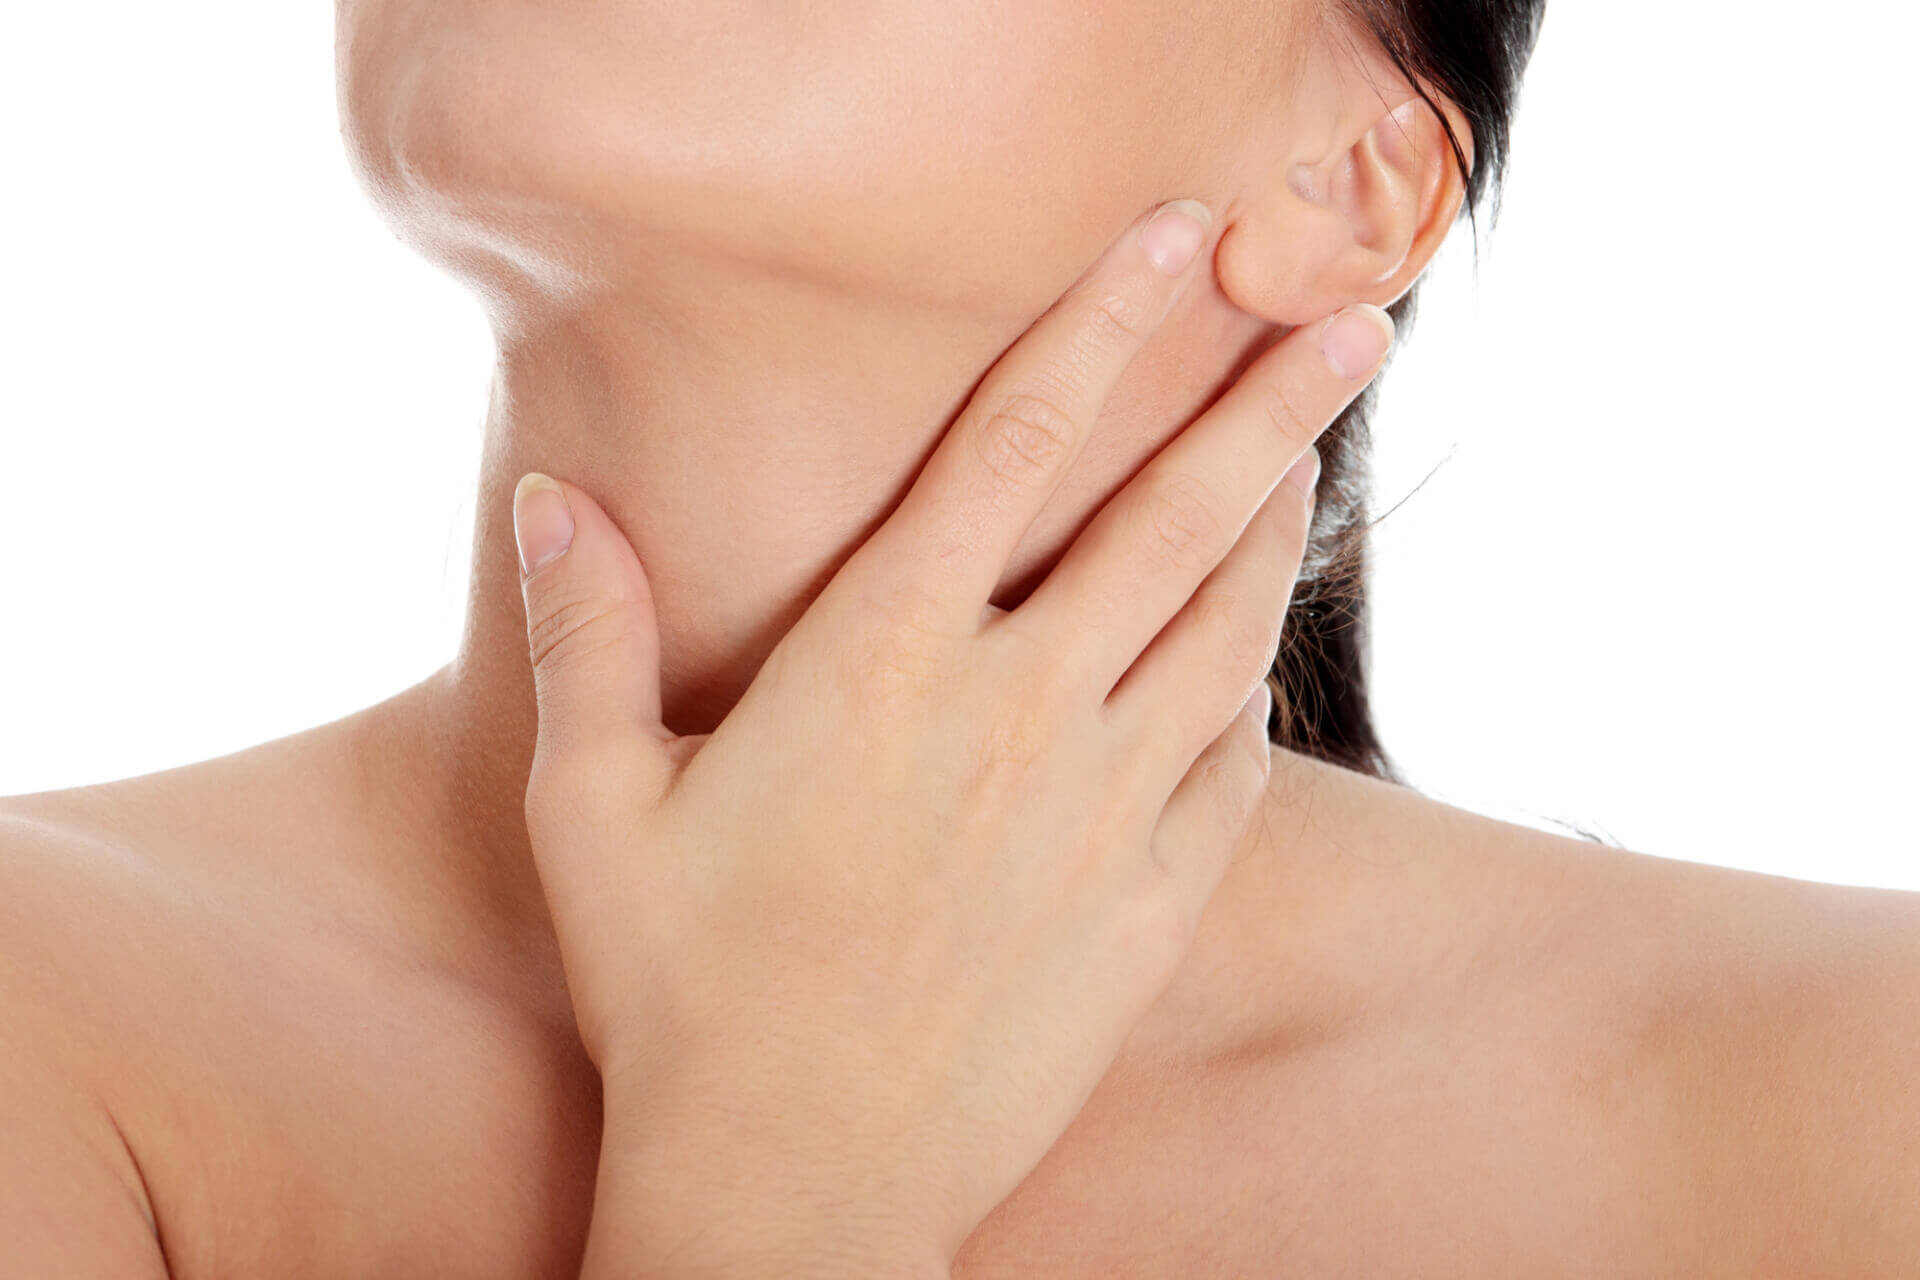 5 Habits to Adopt to Reduce Neck and Neckline Wrinkles